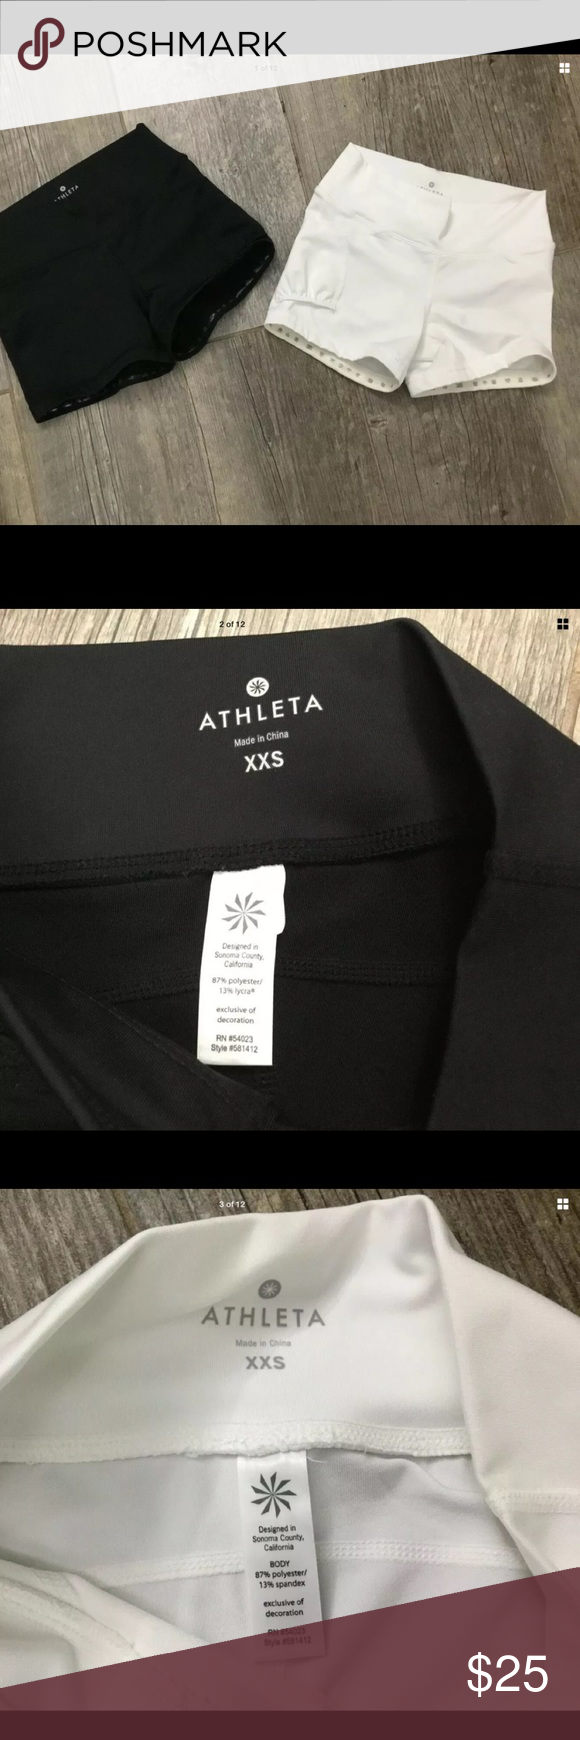 """Athleta 2 Boy Shorts Cheer Workout Running XXS Athleta Lot Of 2 Shorts White Black Boy Shorts Cheer Workout Running Size XXS  In excellent like new condition  Made of 87% Polyester 13% Spandex  Measures while lying flat approximately  Waist 22-26""""  Rise 6.5""""  Inseam 3""""   Features  Hidden inside waistband pocket  Wide waistband  Stay put rubberized band around leg openings Athleta Shorts #cheerworkouts Athleta 2 Boy Shorts Cheer Workout Running XXS Athleta Lot Of 2 Shorts White Black Boy Sh #cheerworkouts"""